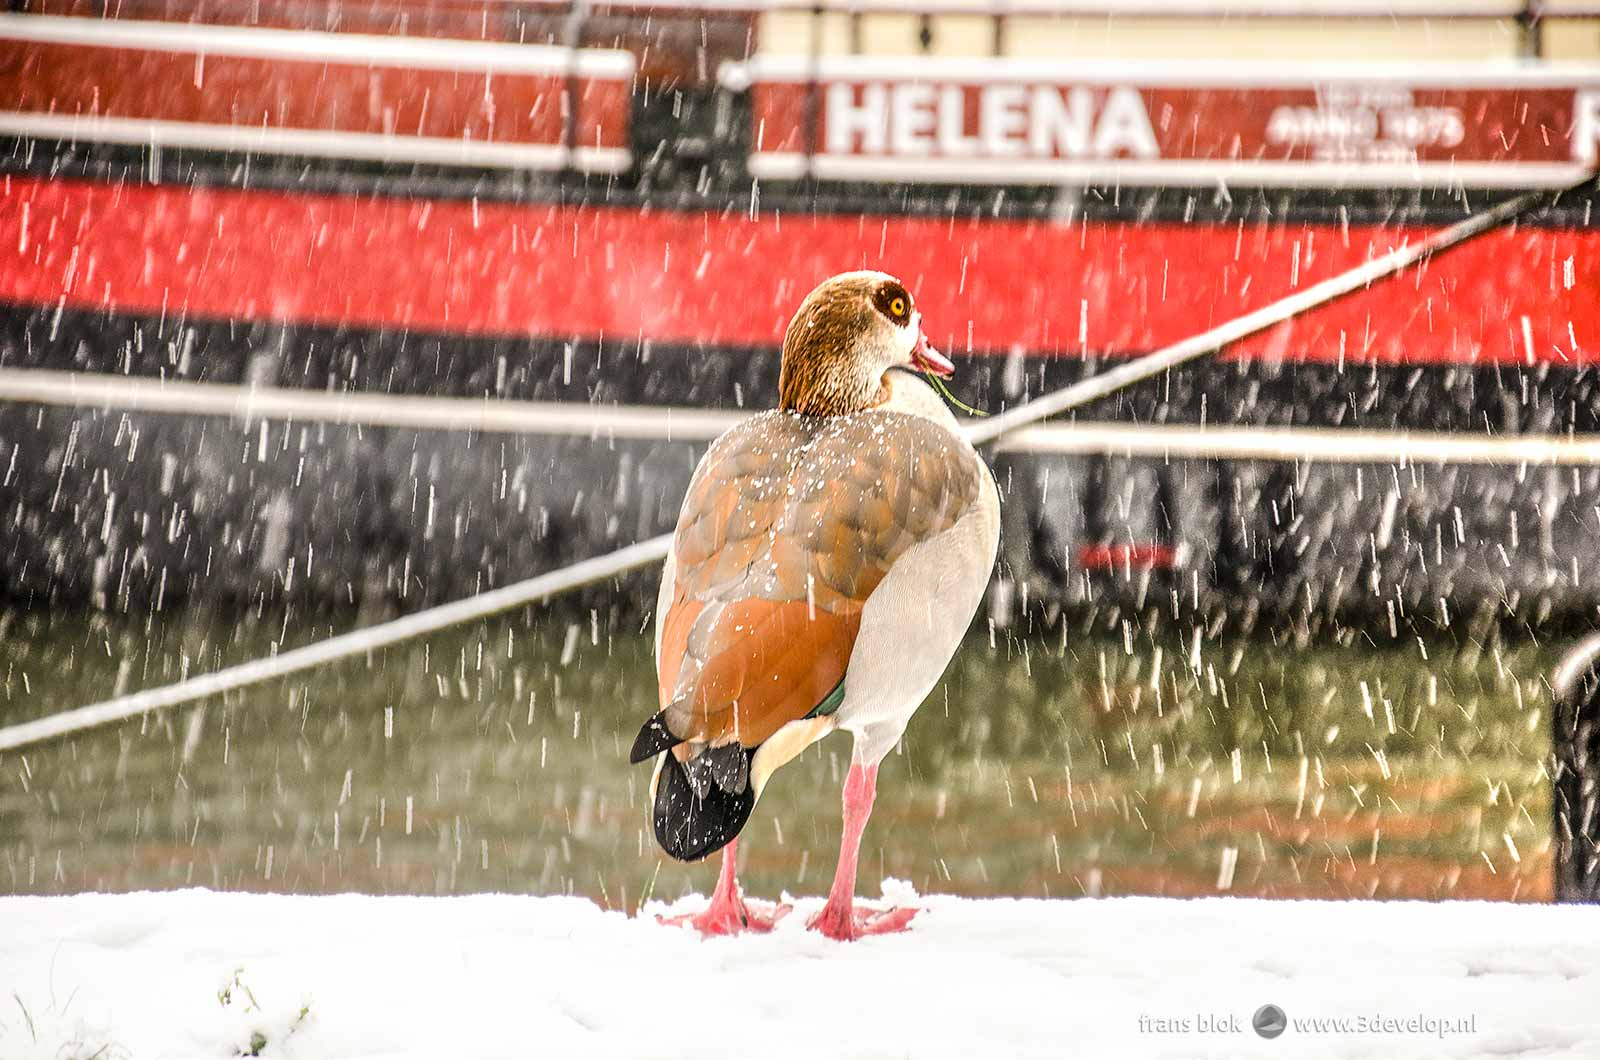 A nilegoose during a snowstorm on the quay near the Maritime Museum at Leuvehaven in Rotterdam